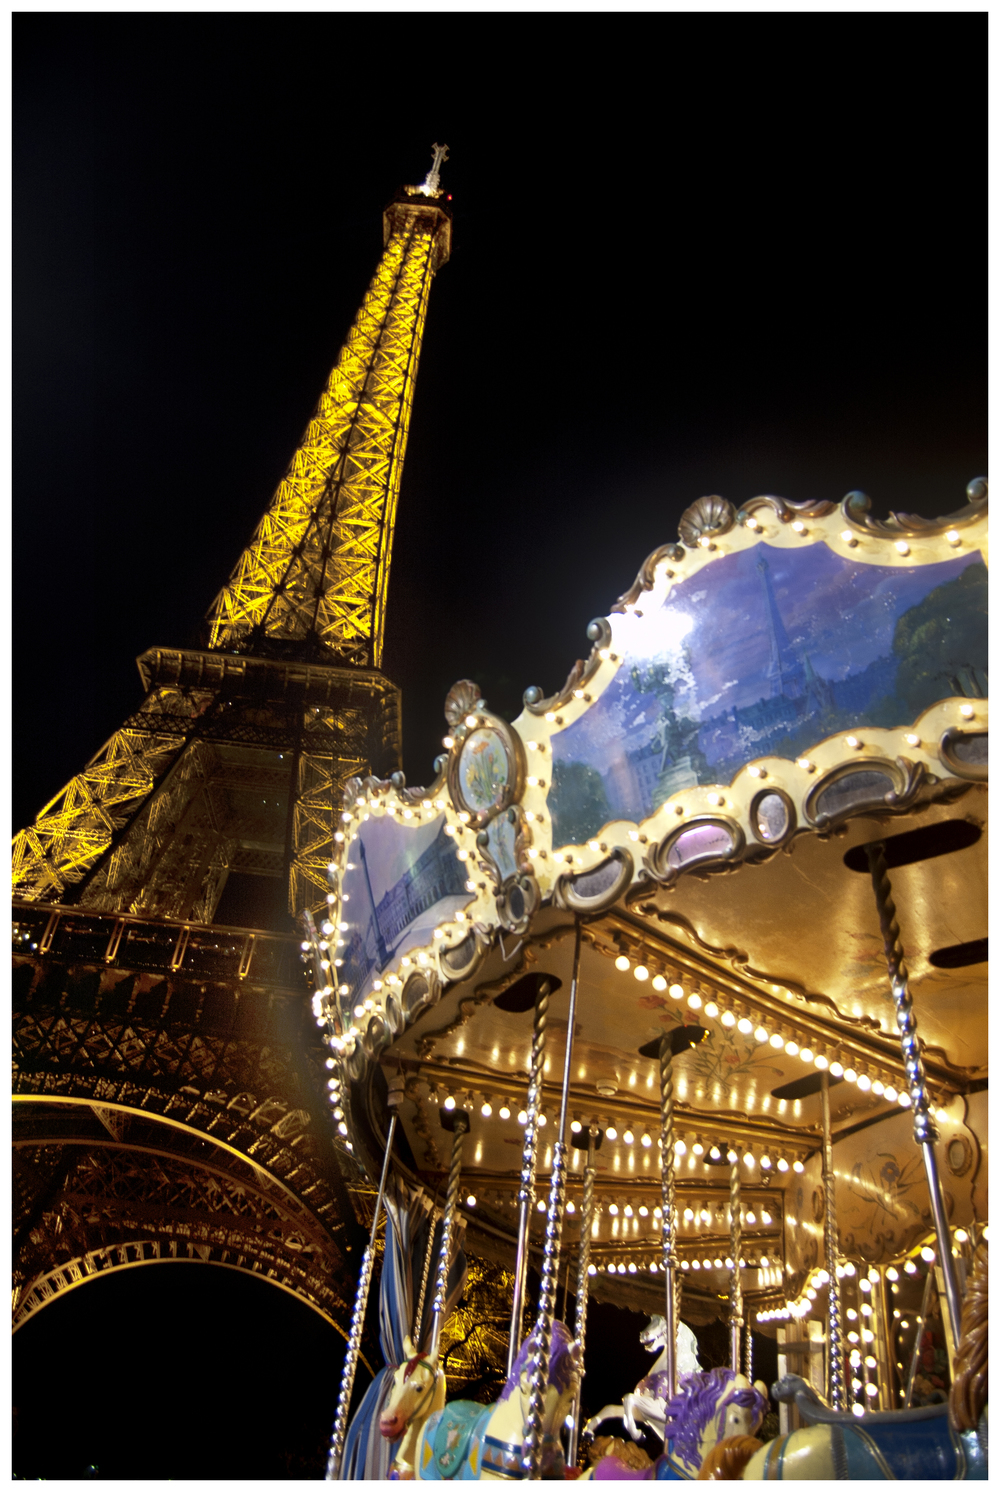 Night shot of Carrousel de la Tour Eiffel